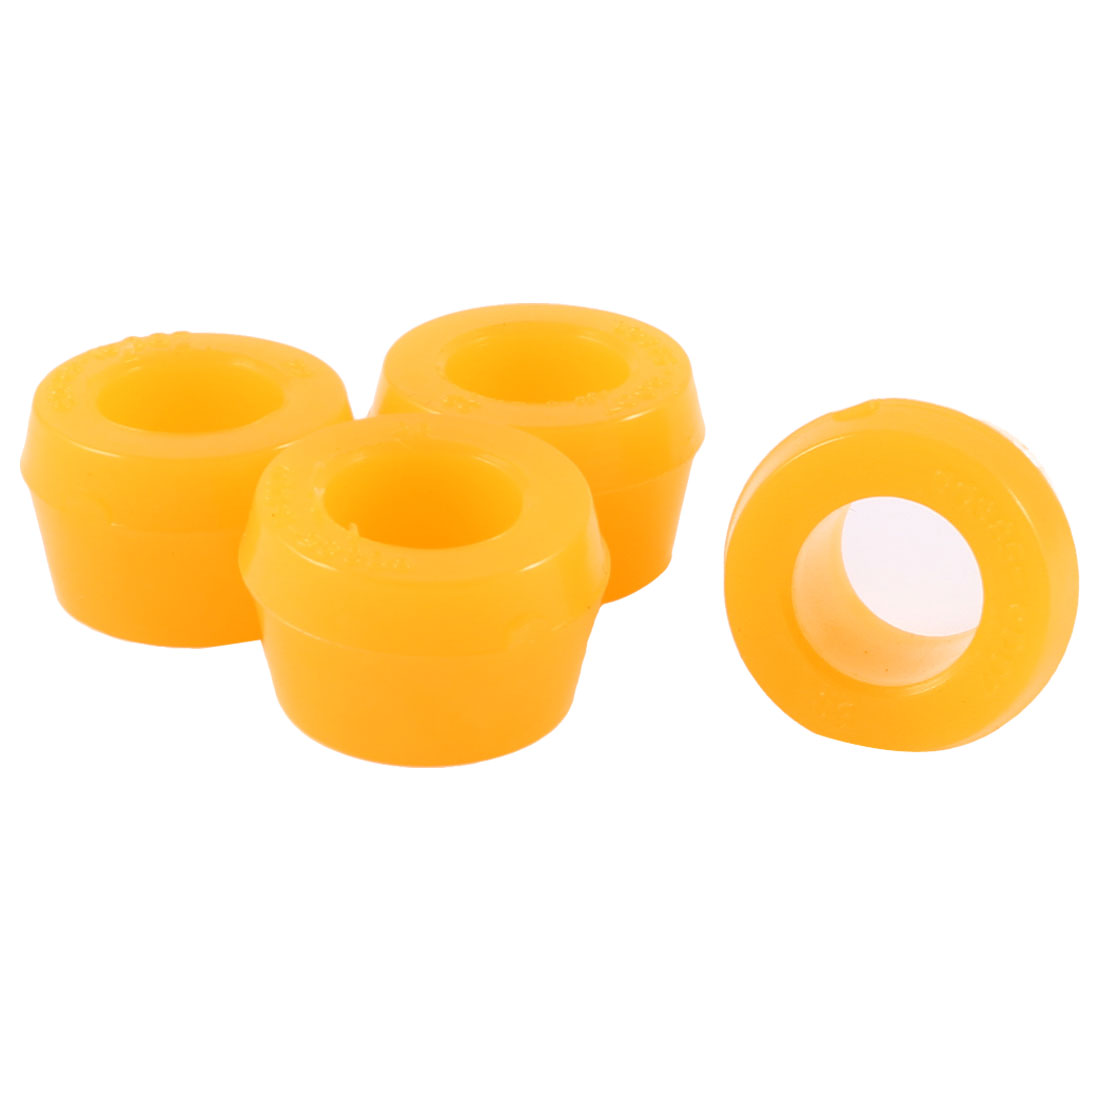 4 Pcs Rubber Shock Absorber Bushings Orange 27mm x 16mm x 18mm for Cars Trucks